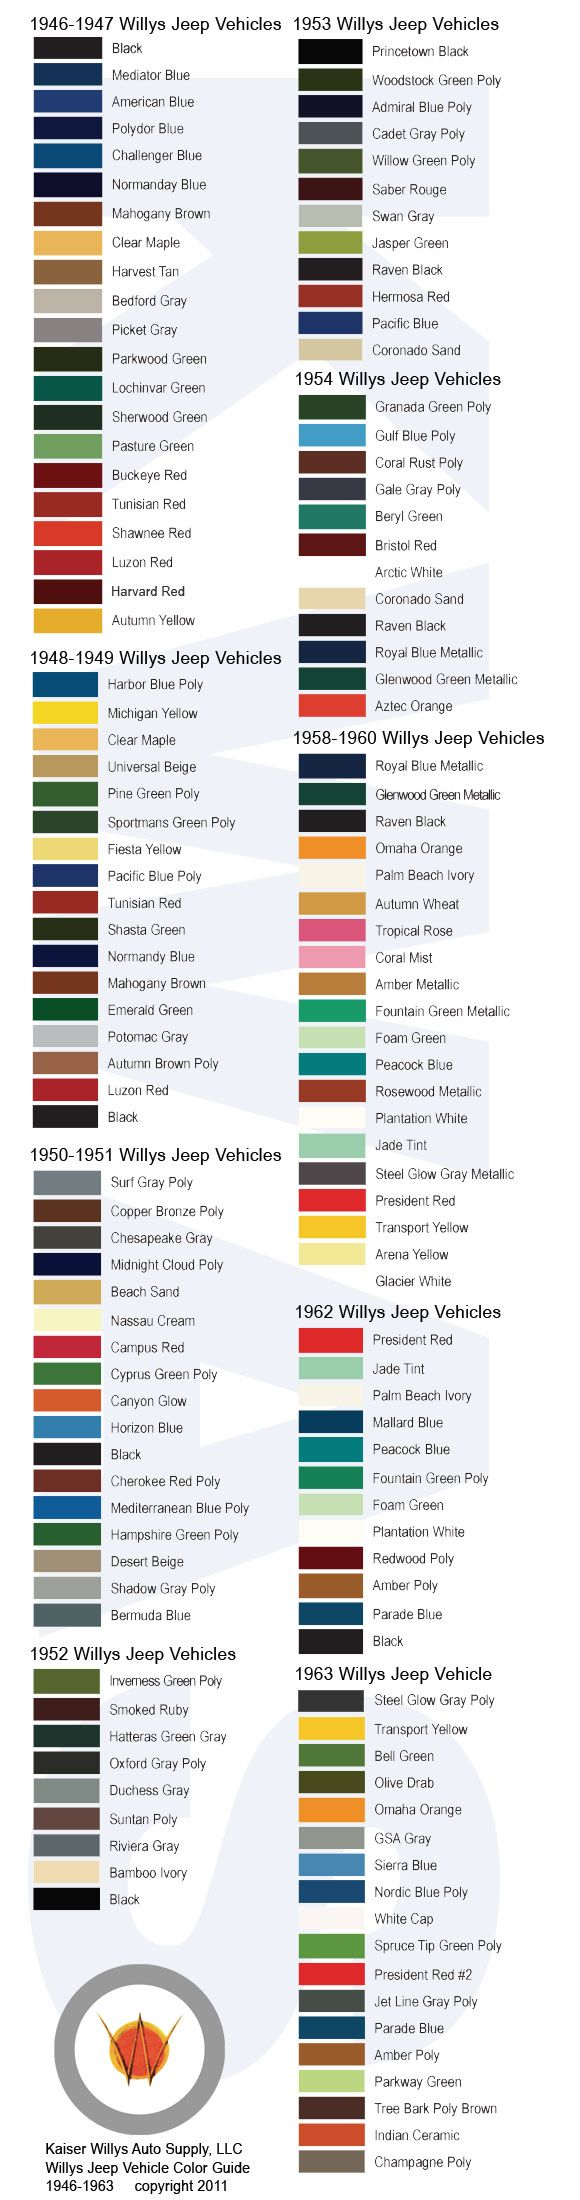 kaiser willys jeep vehicle color guide 1946 1963 jeeps kaiser willys jeep vehicle color guide 1946 1963